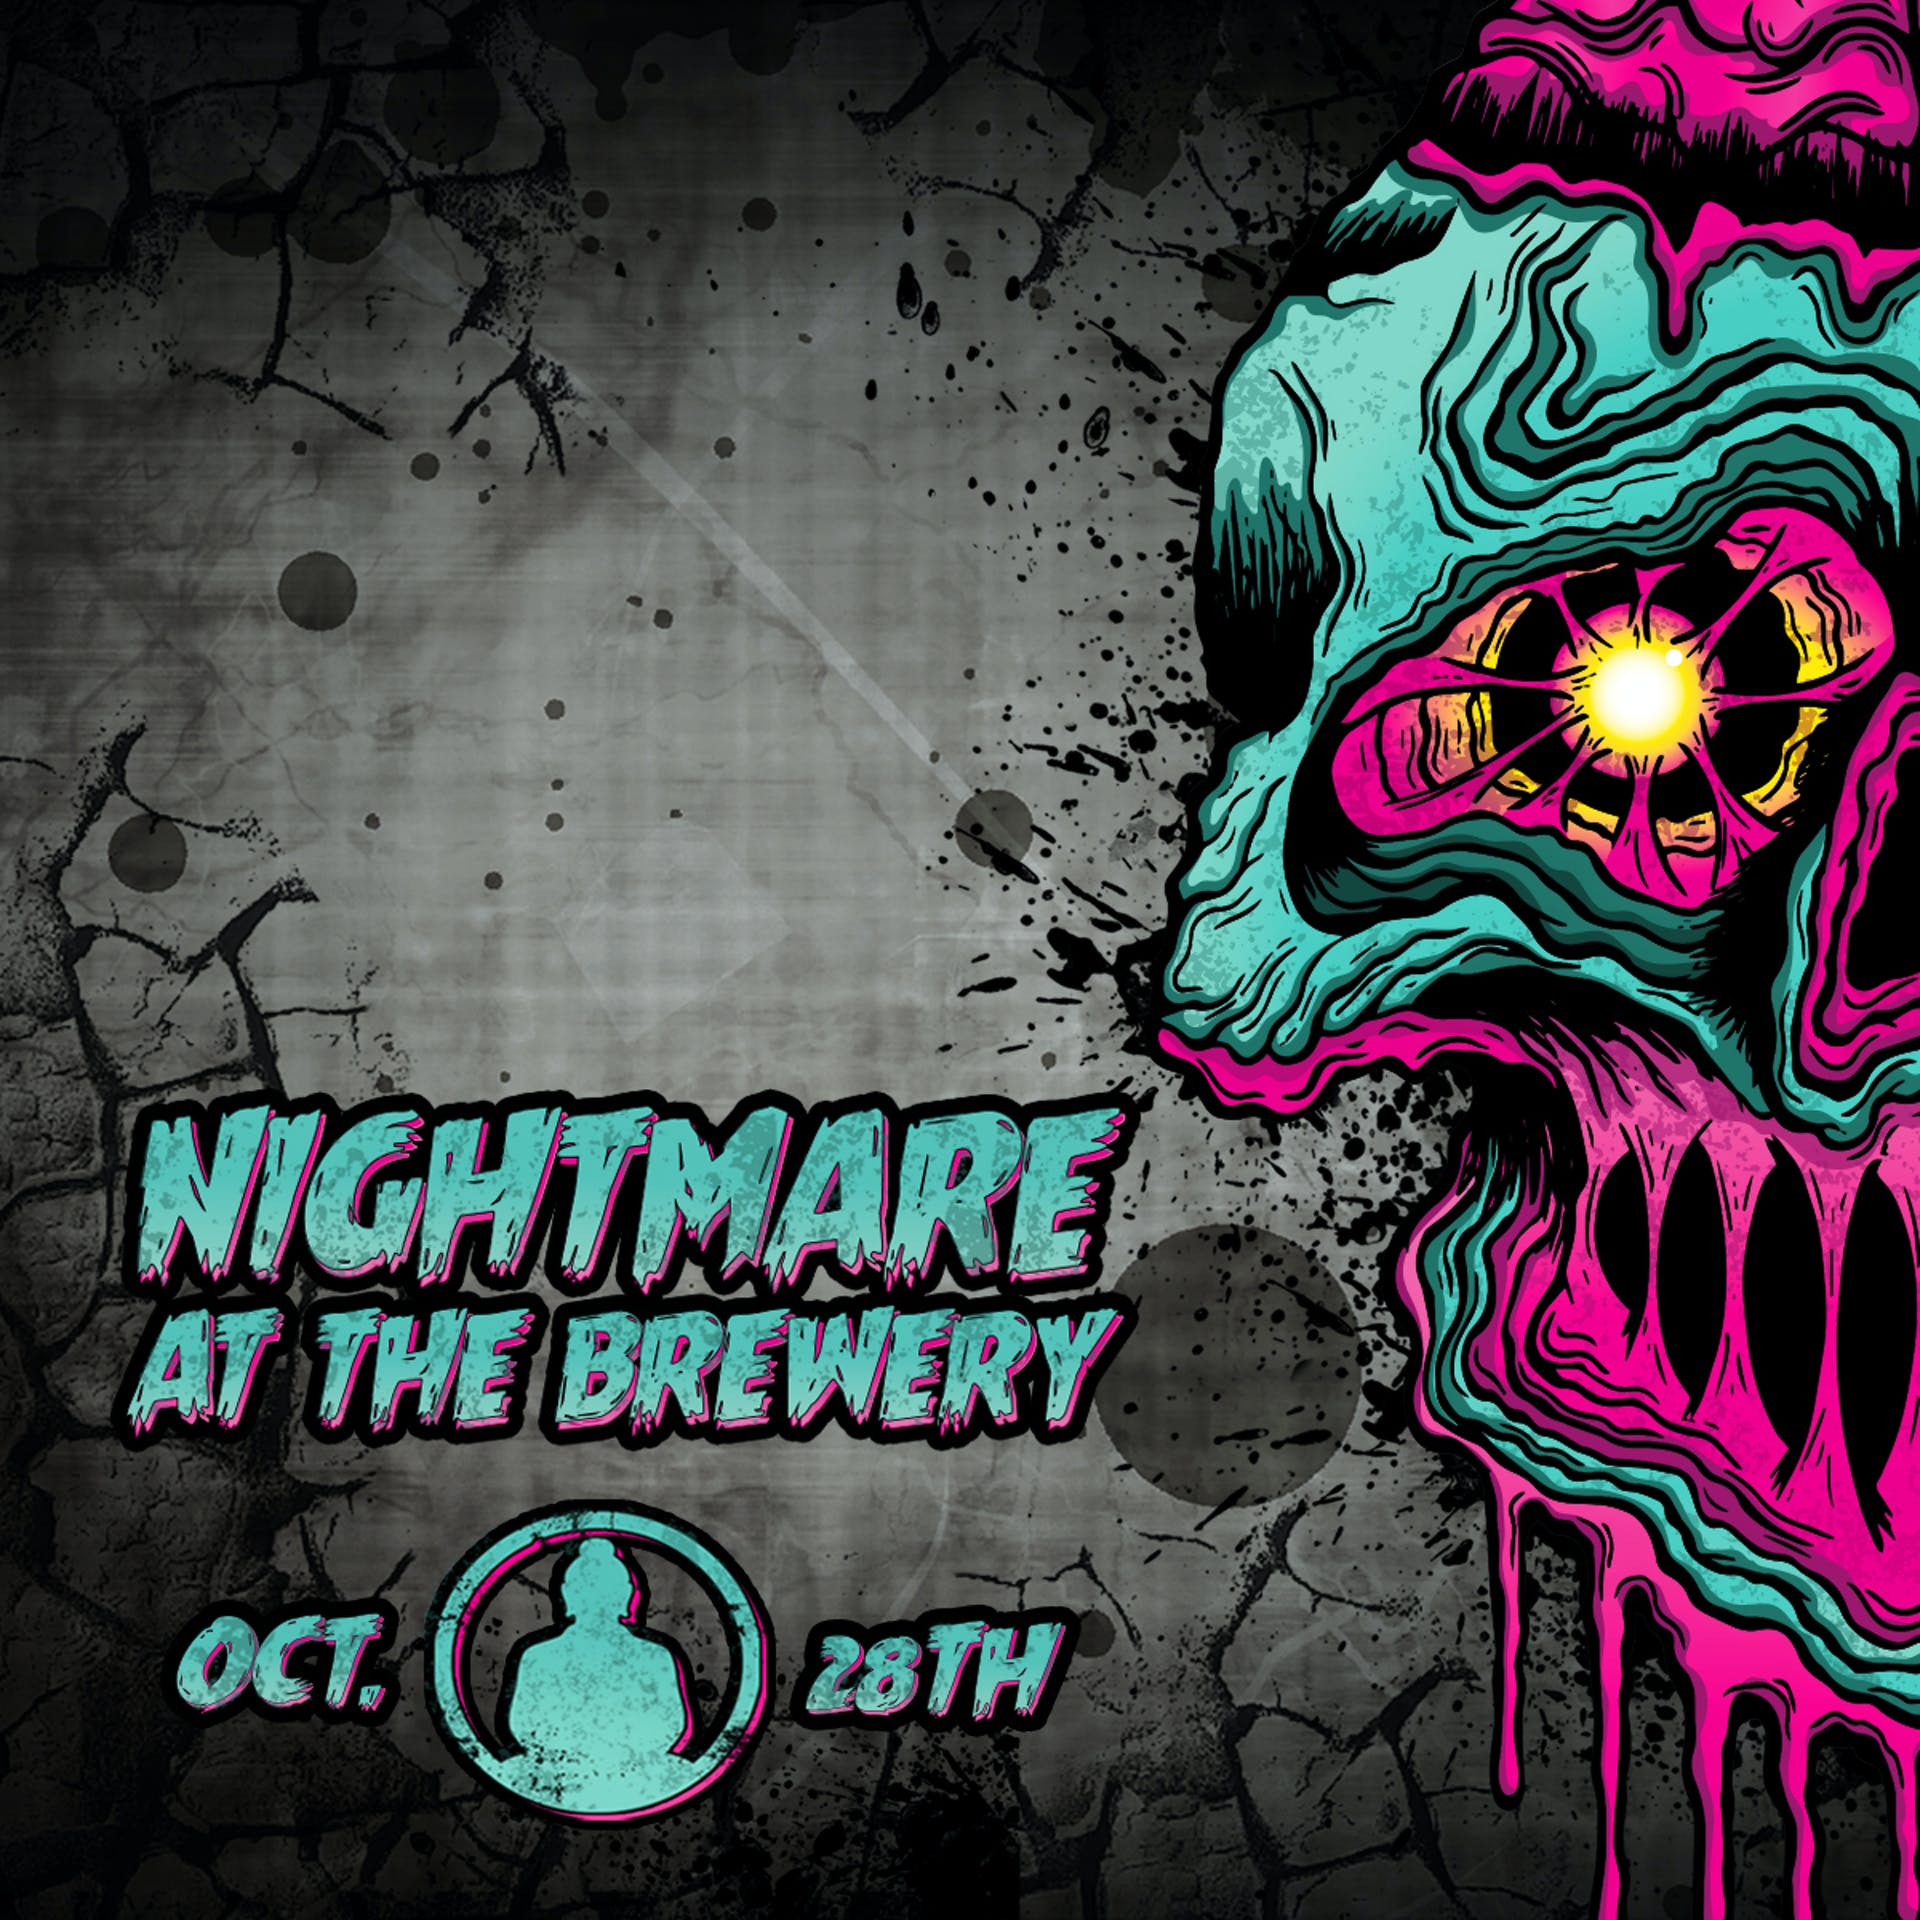 FBB_Nightmare_at_the_brewery_1200x1200